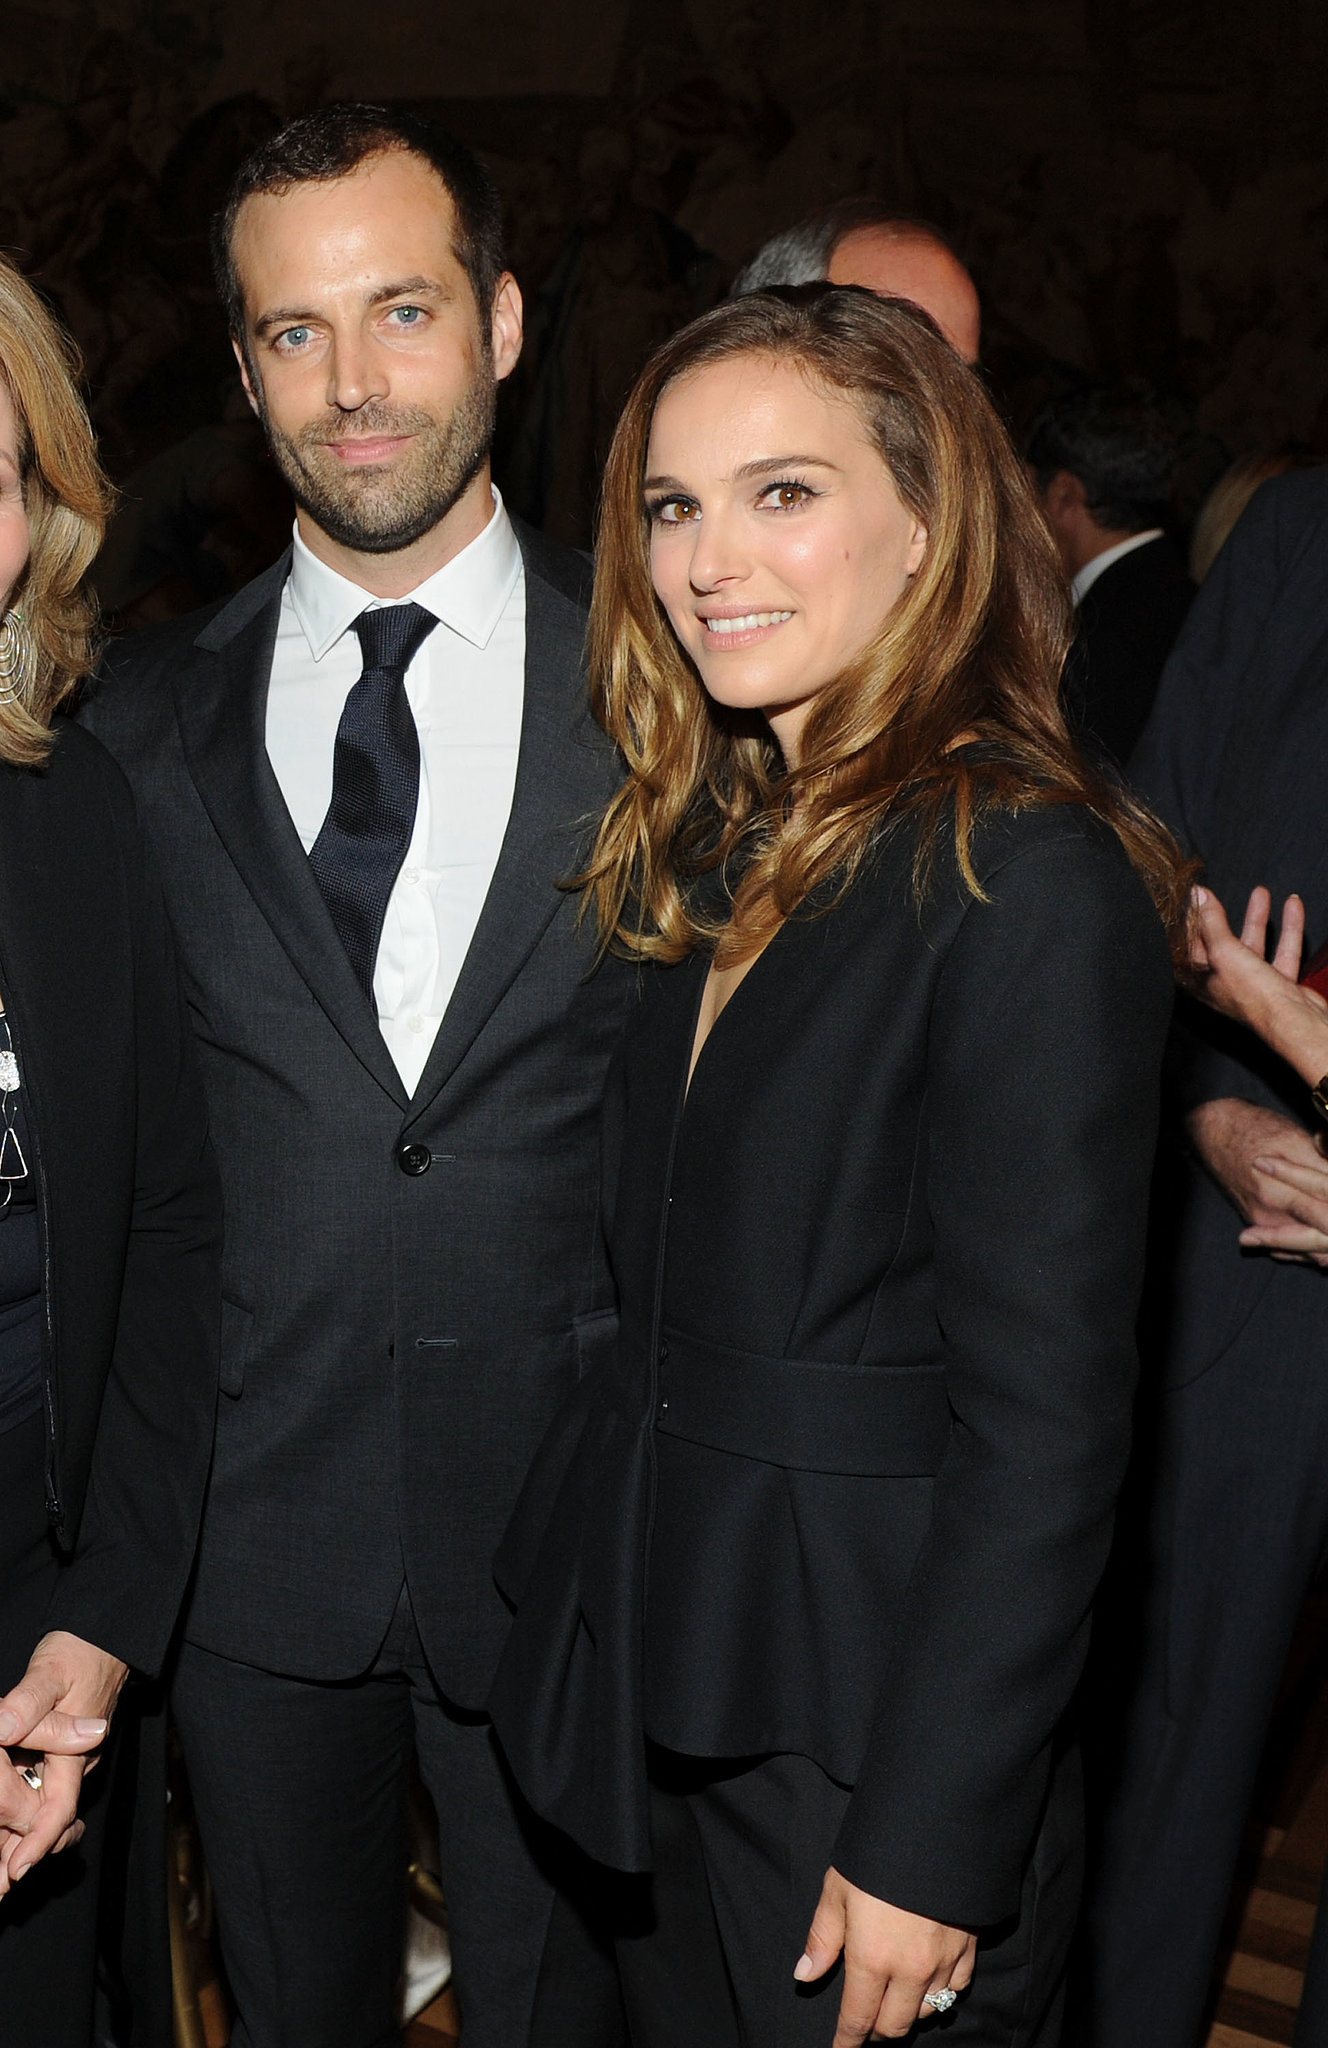 Natalie Portman feted Benjamin Millepied along with Vacheron Constantin and the American Friends of the Paris Opera & Ballet.